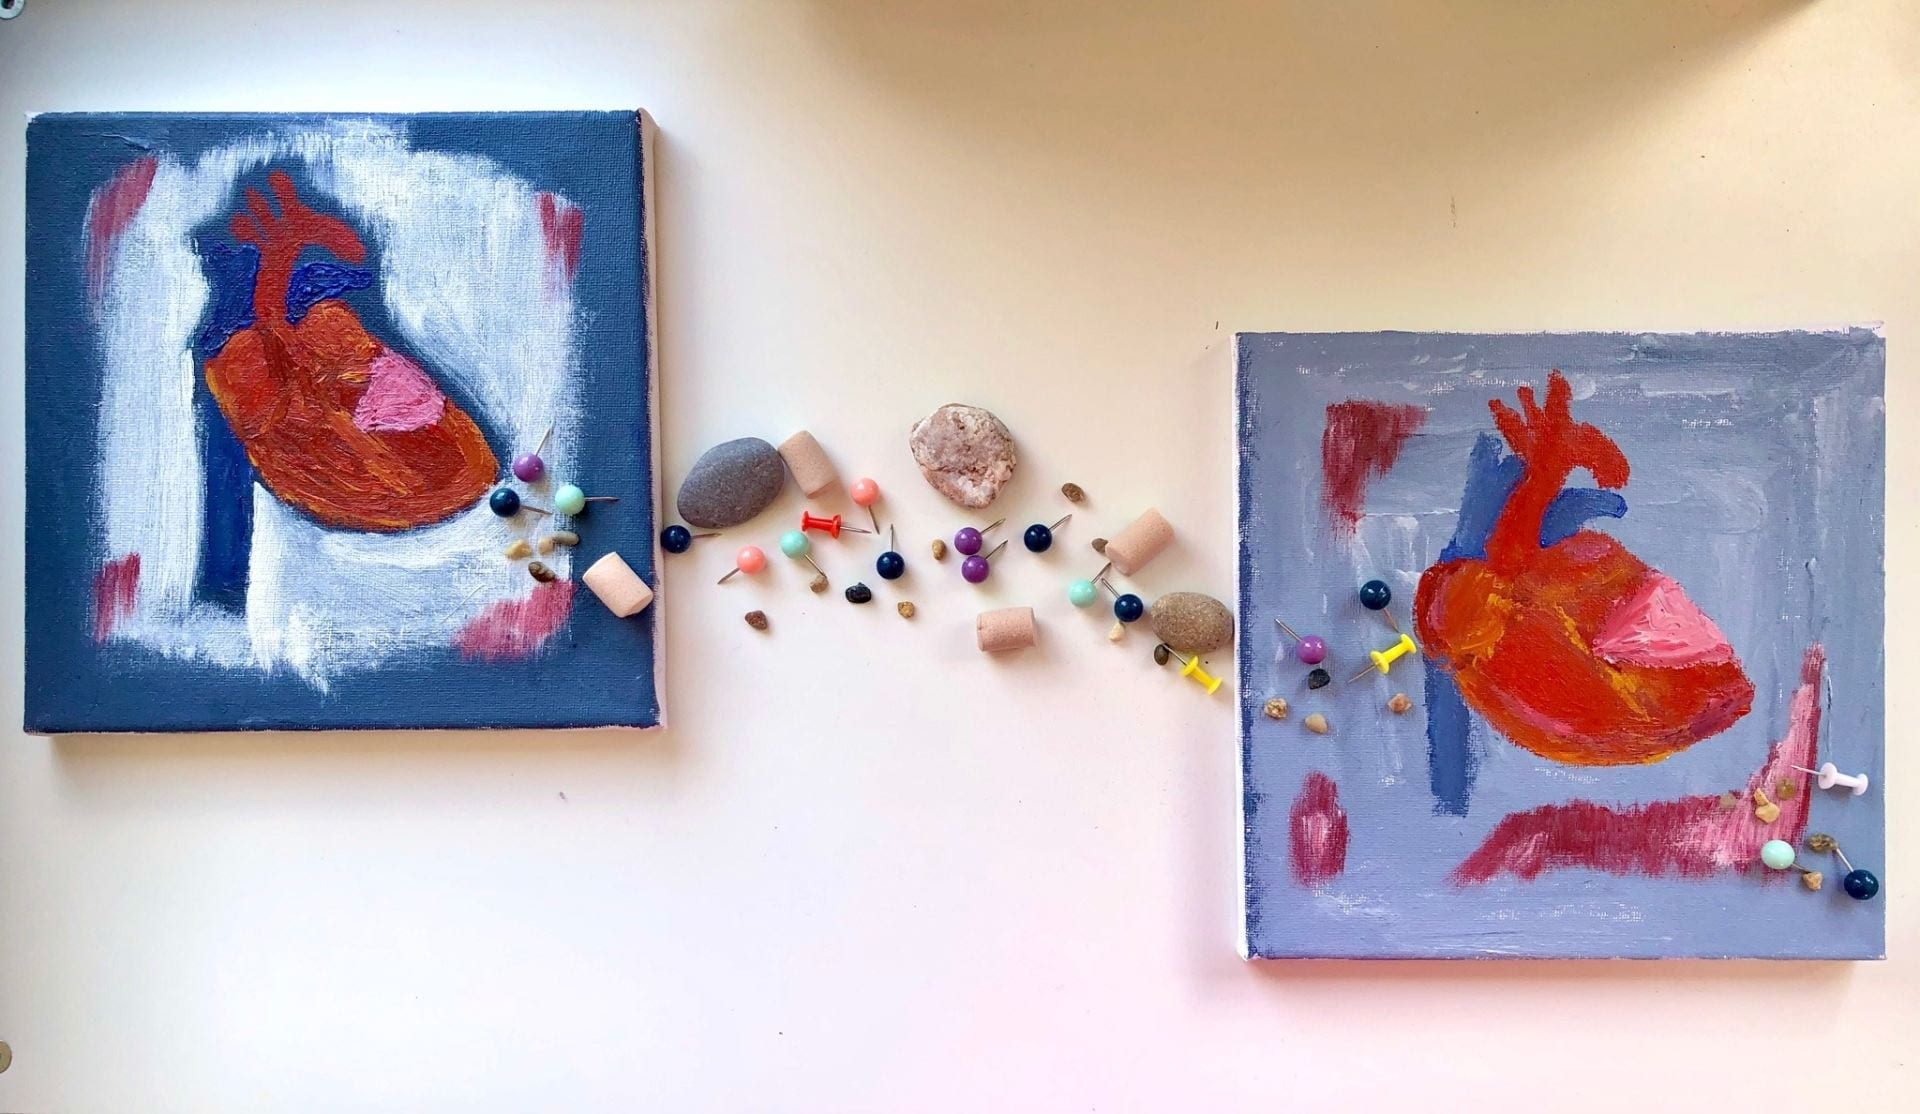 Two square paintings of hearts. Between them is an assortment of stones, earplugs and drawing pins.